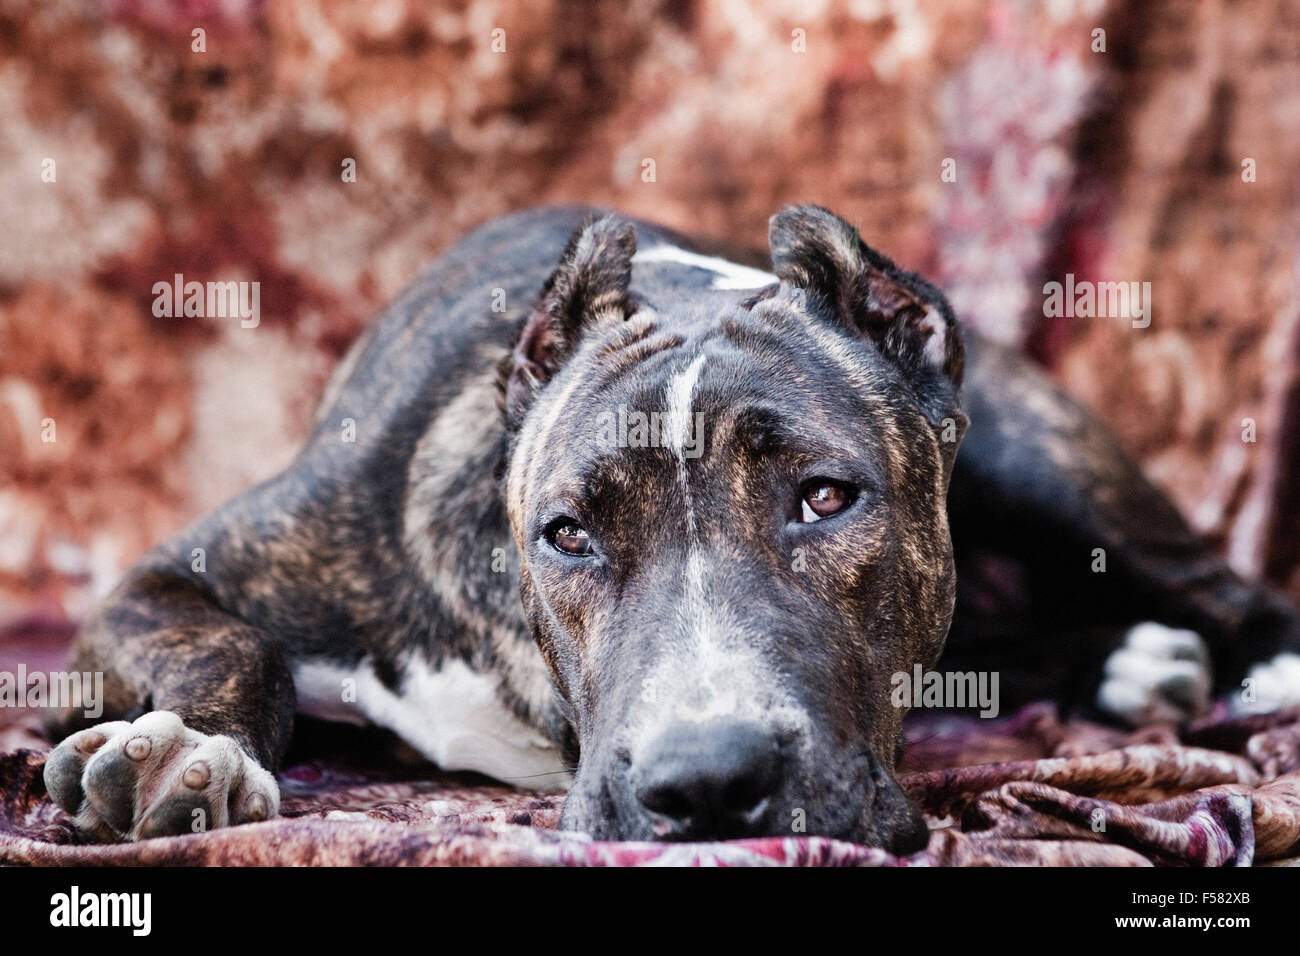 Adult Cane Corso dog laying down on a multi-colored fabric backdrop facing camera with eye contact - Stock Image